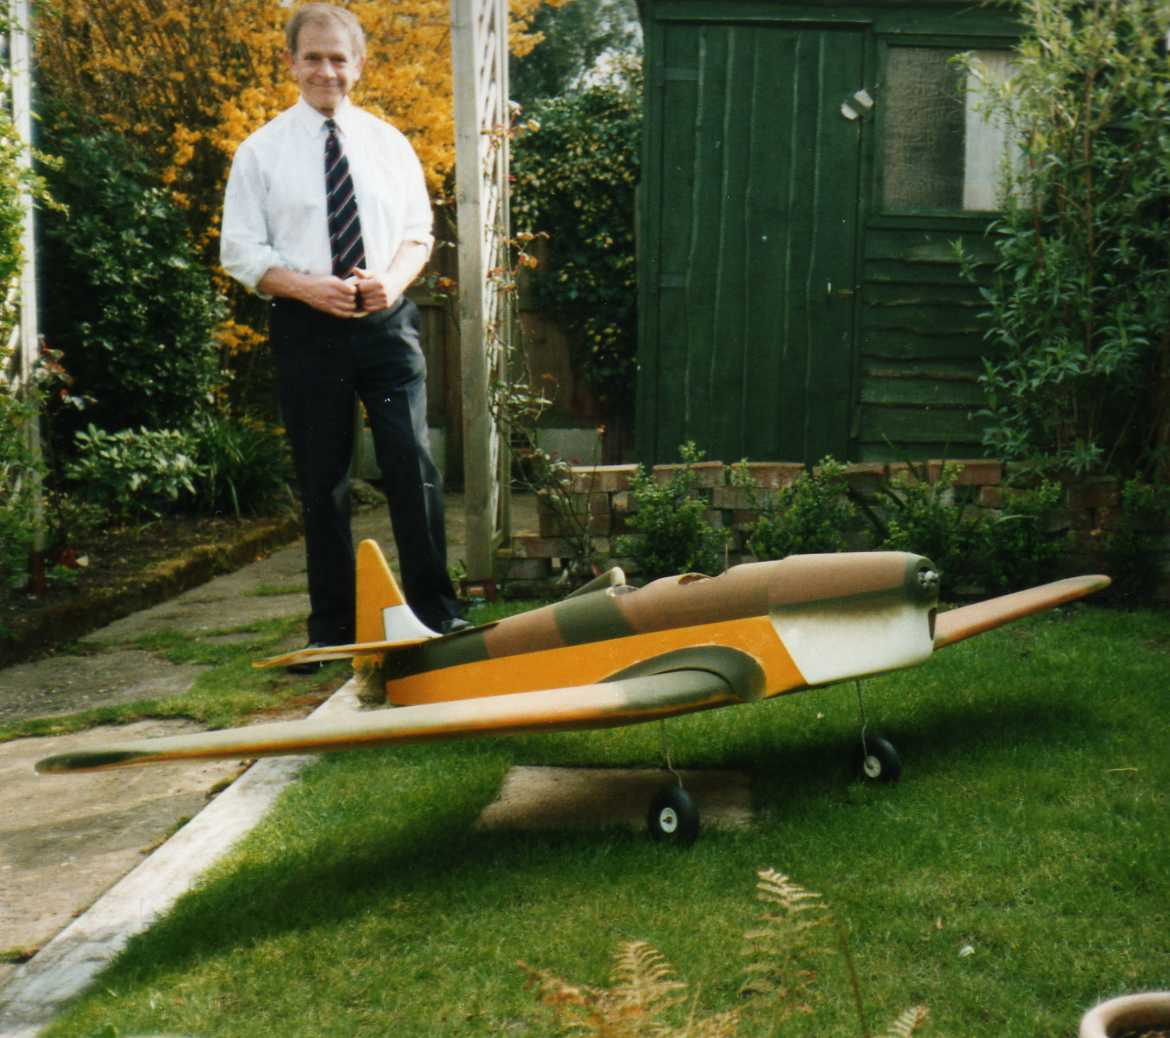 Flying Model of the Spitfire Trainer - Miles Magister